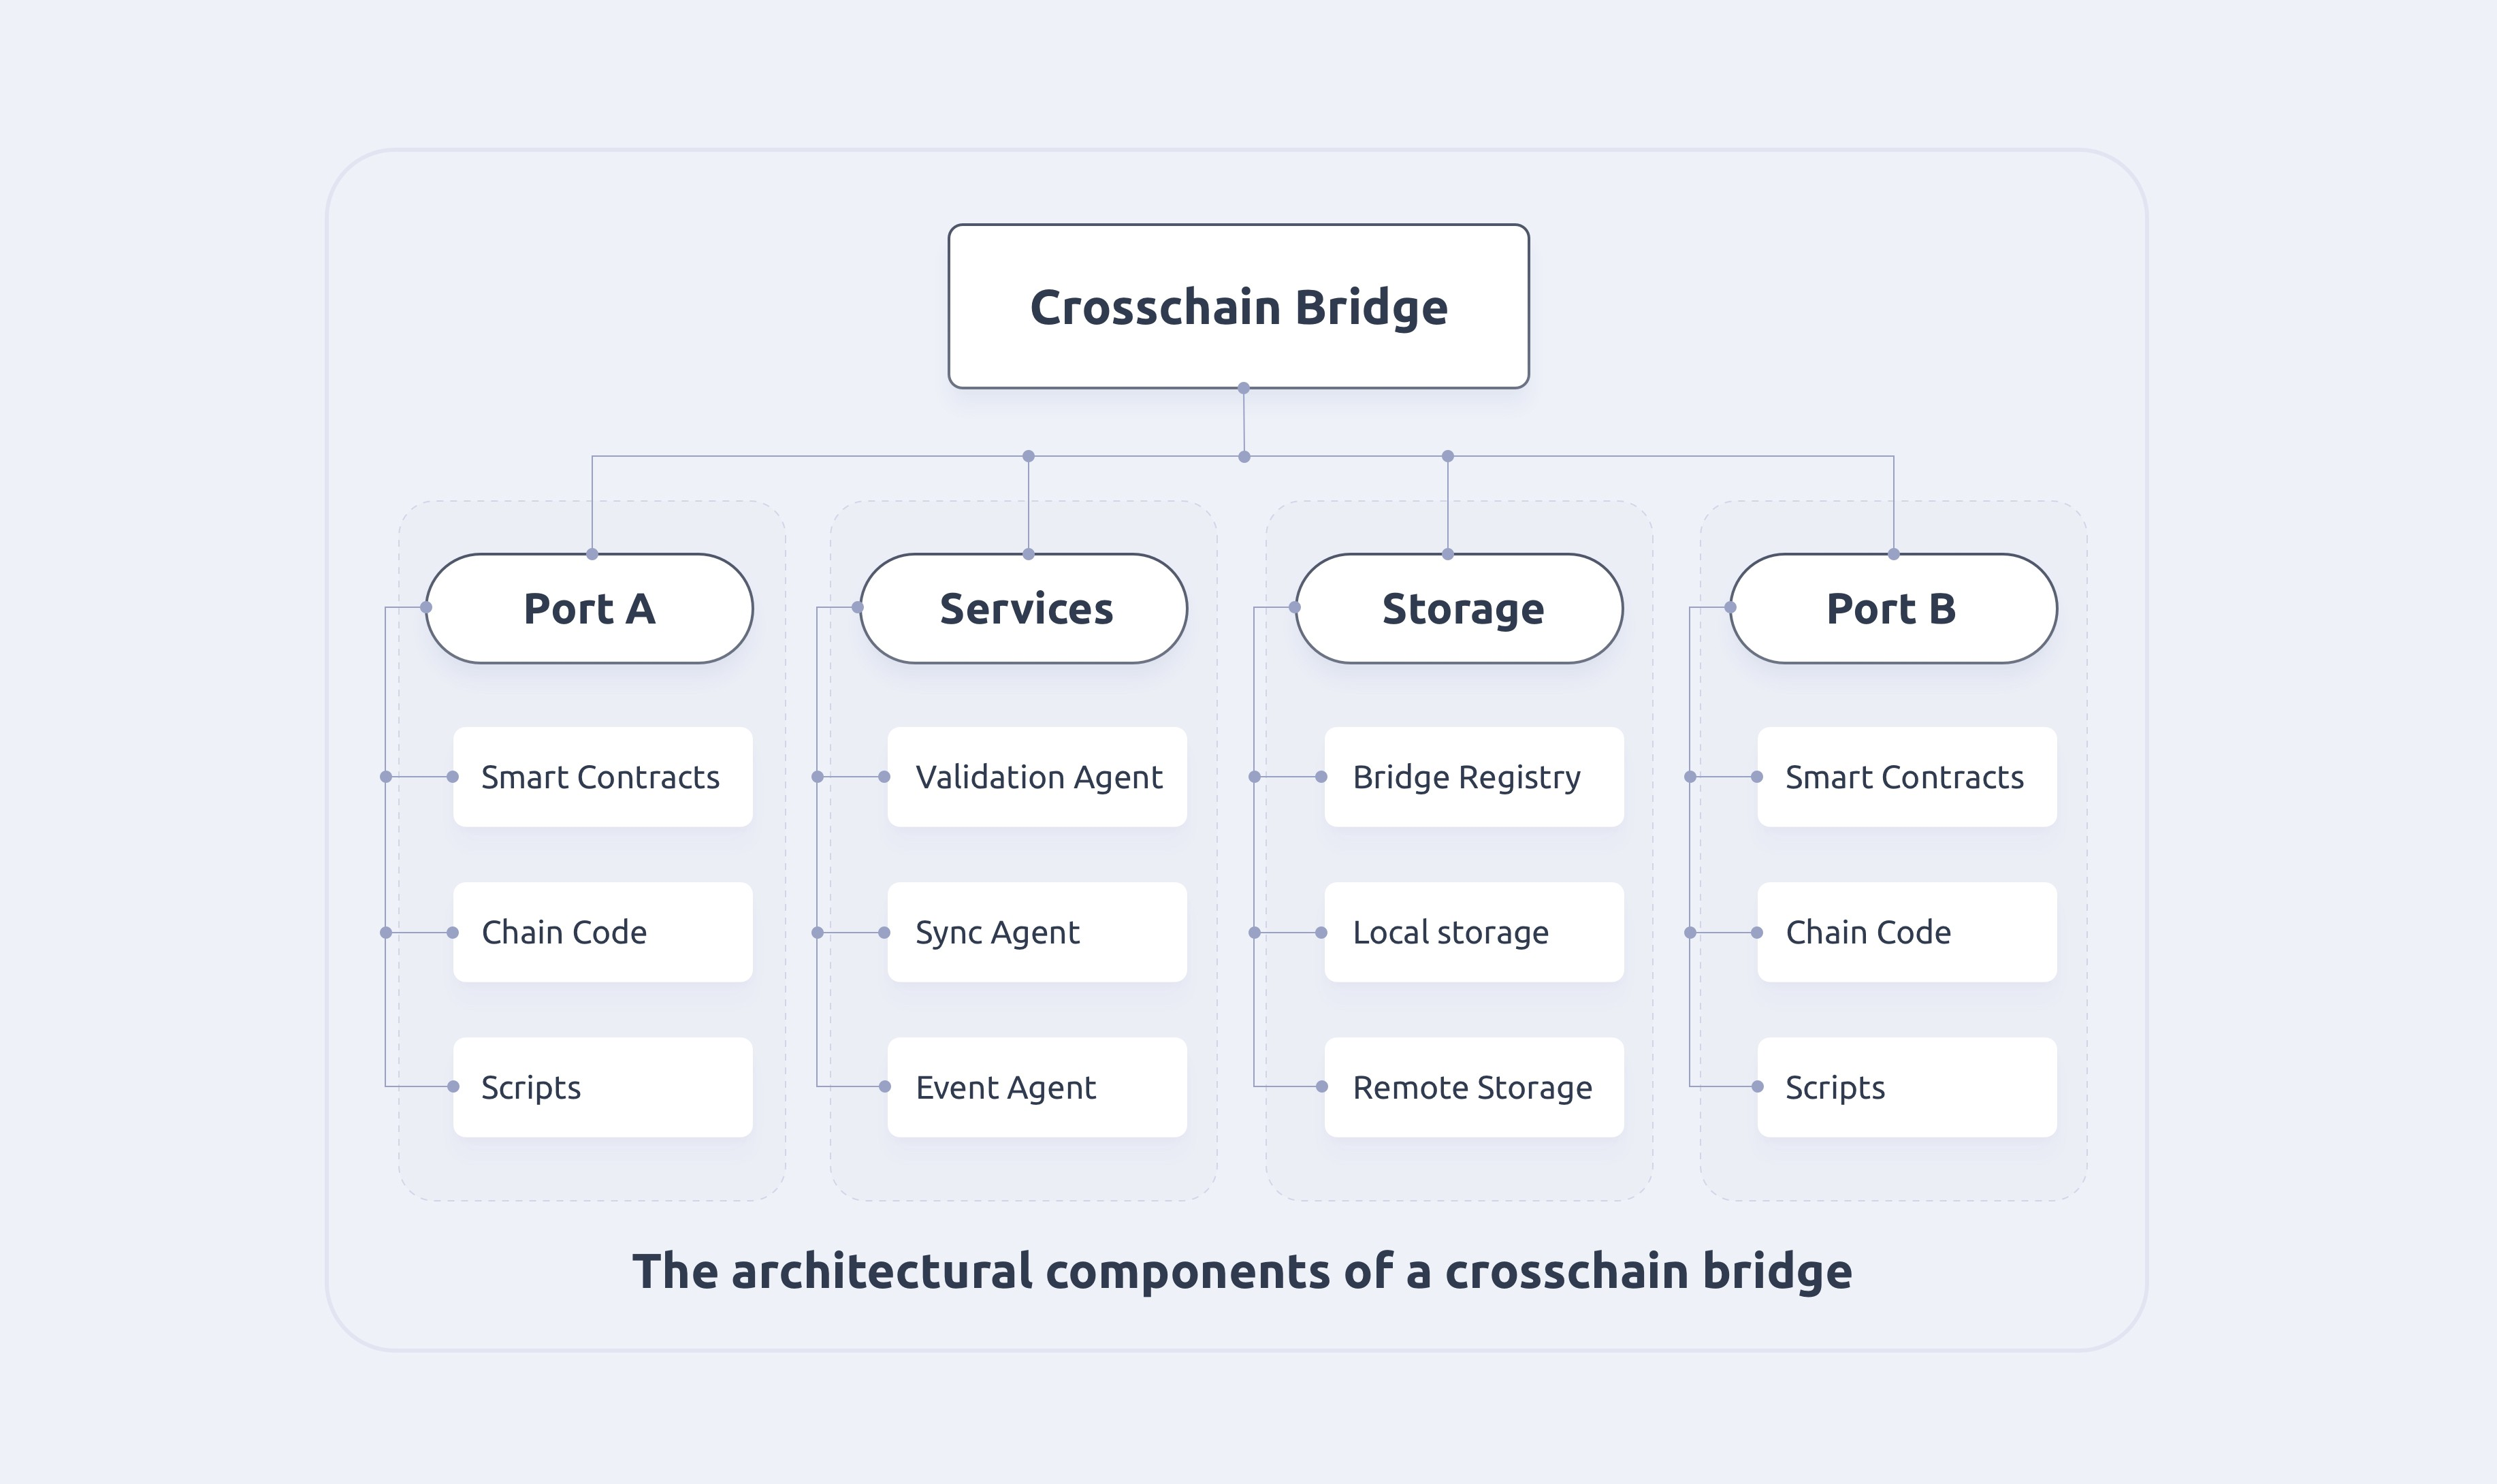 Figure 2 The architectural components of a crosschain bridge